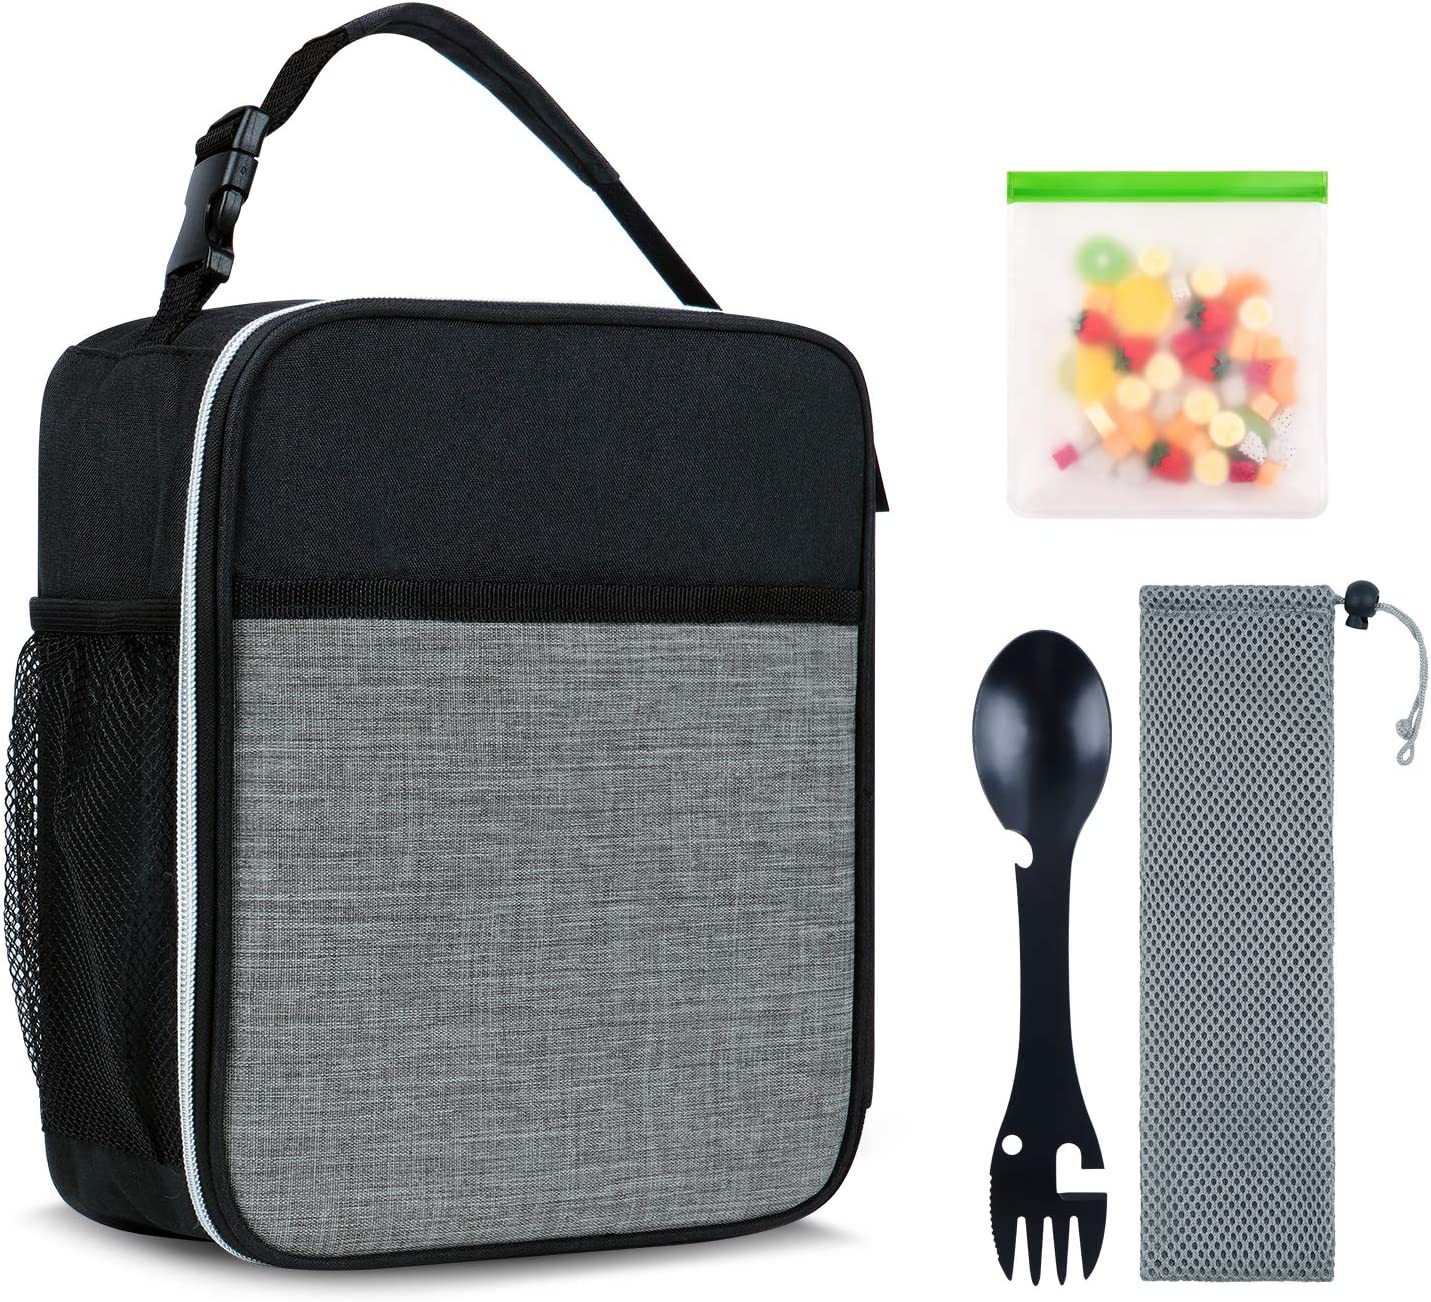 Nirroti Insulated Lunch Bags for Men Kids Leakproof Reusable kids Lunch Box with Water Bottle Holder Mini Lunch Tote Bag, Soft Lunch Container Cooler Bag for School Work Office, Black and Grey